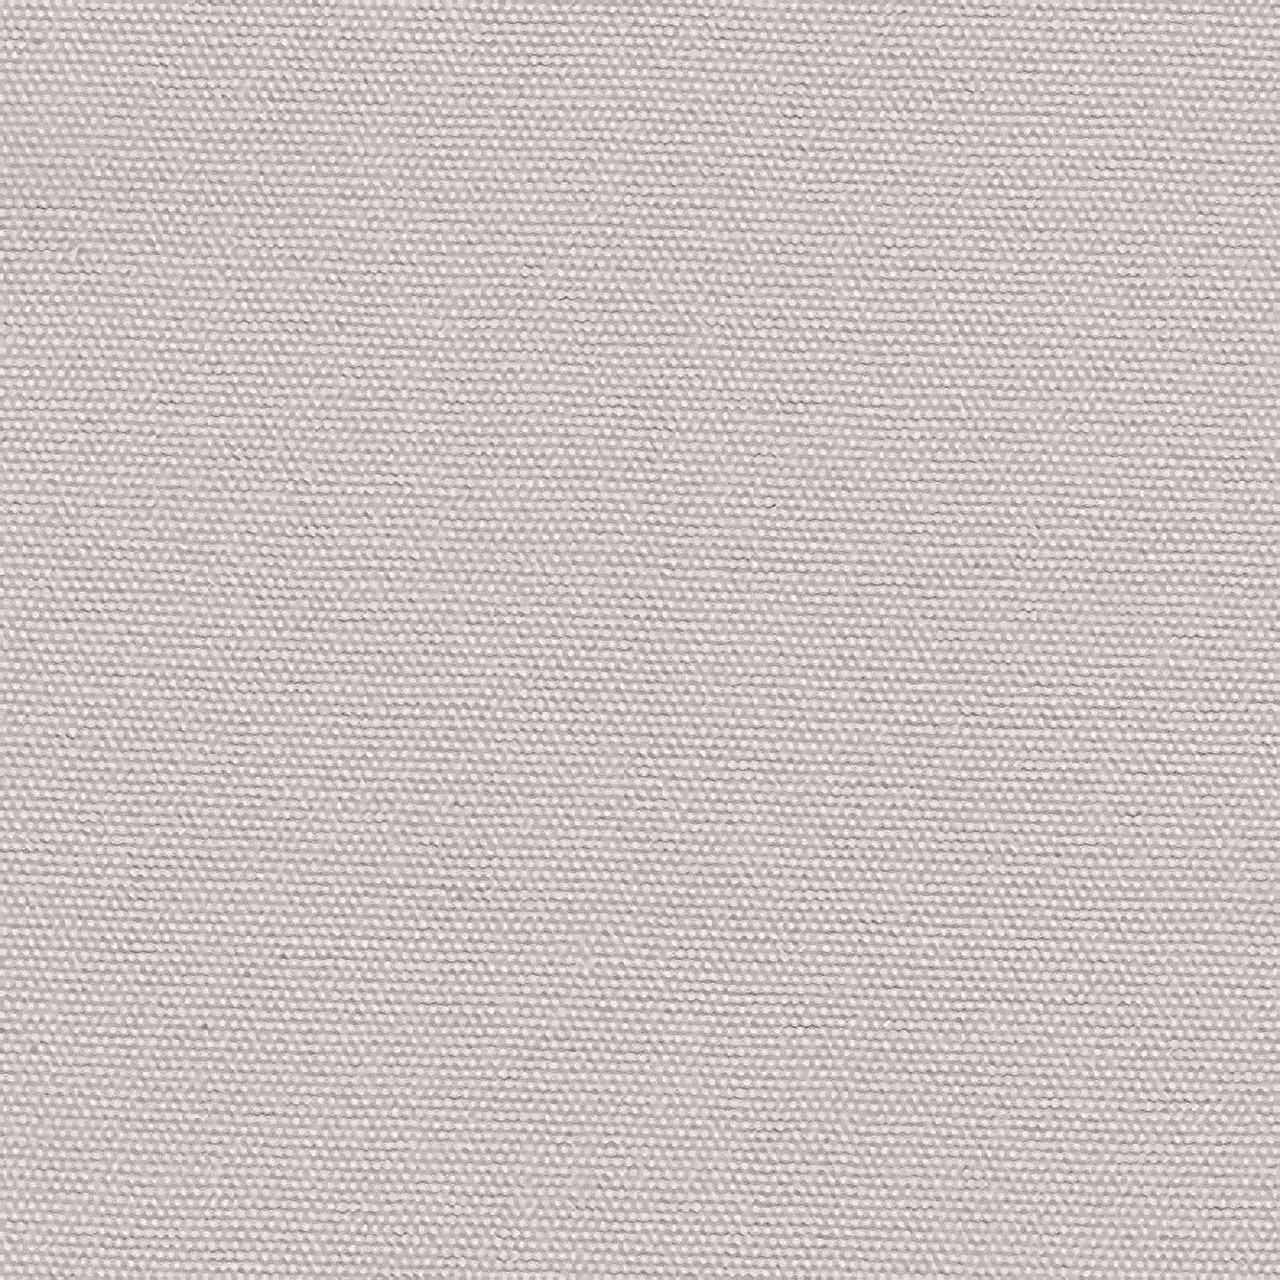 Willbro Italy Gelato Rose Nougat  | Upholstery Fabric - Beige, Plain, Natural Fibre, Domestic Use, Natural, Standard Width